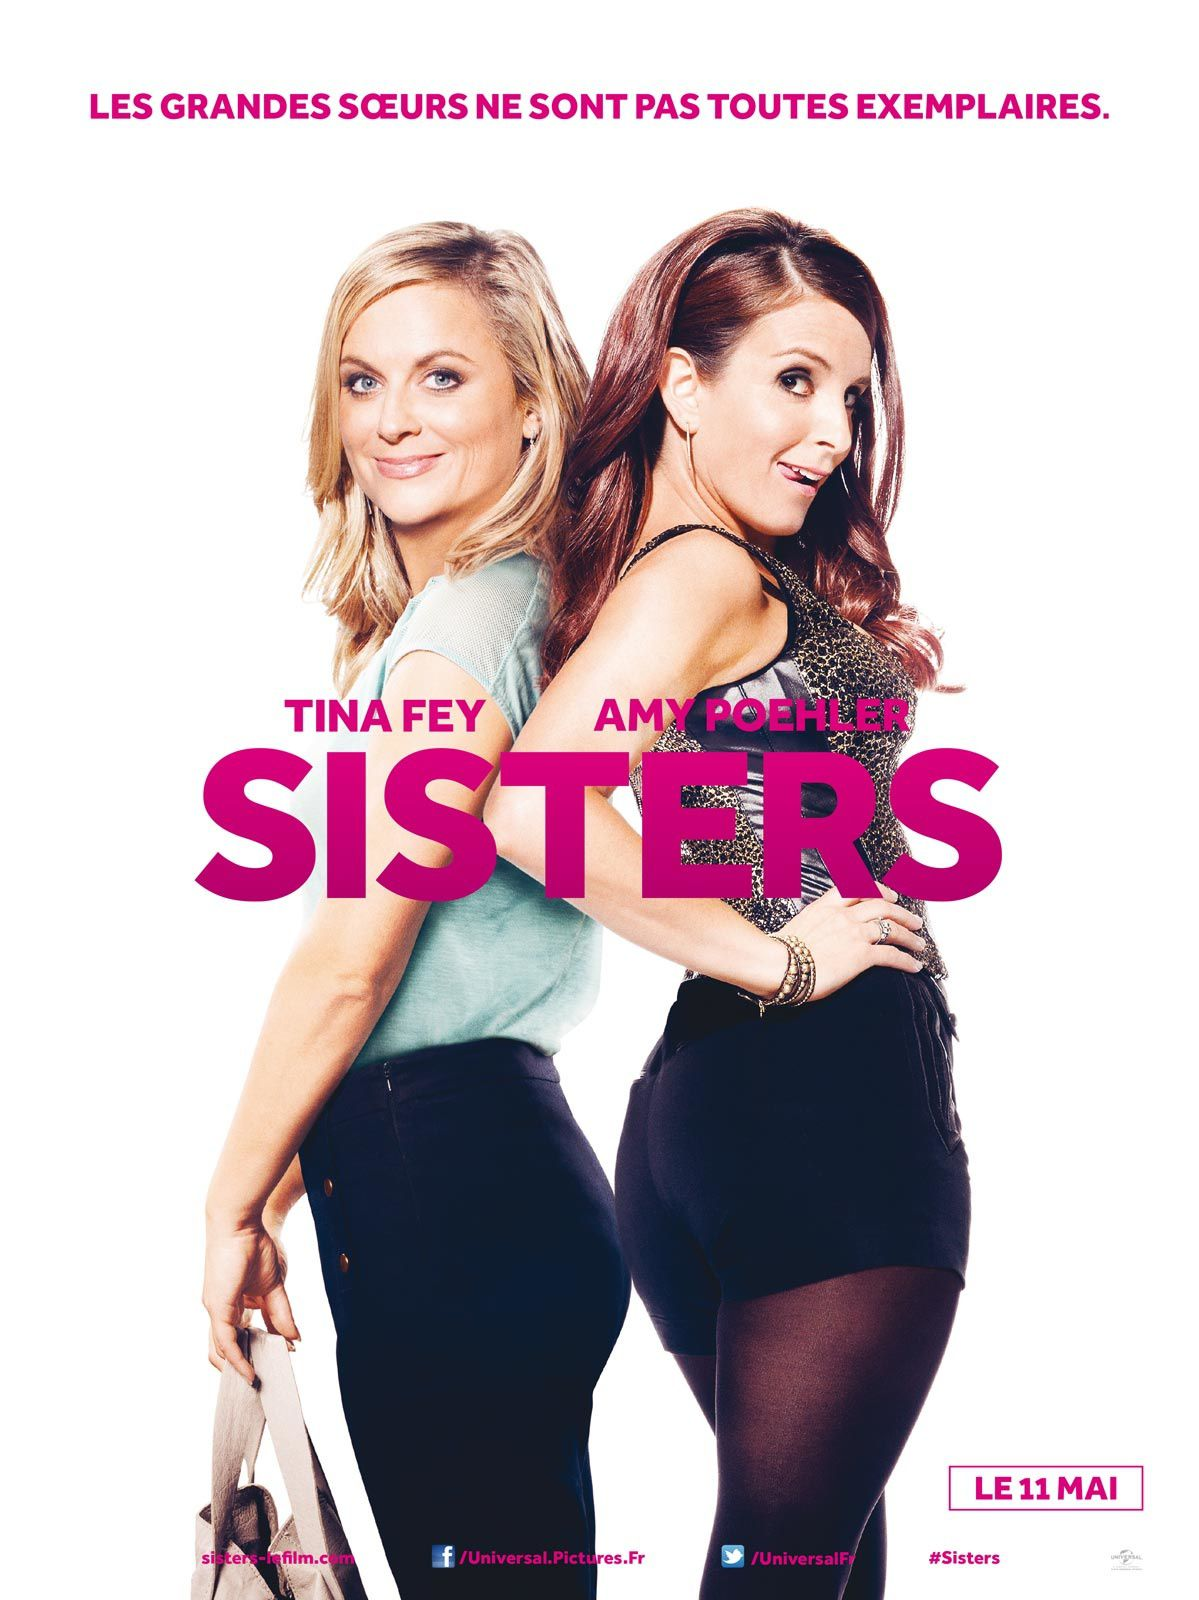 Sisters (BANDE ANNONCE VF et VOST) avec Tina Fey, Amy Poehler, Maya Rudolph - 11 05 2016